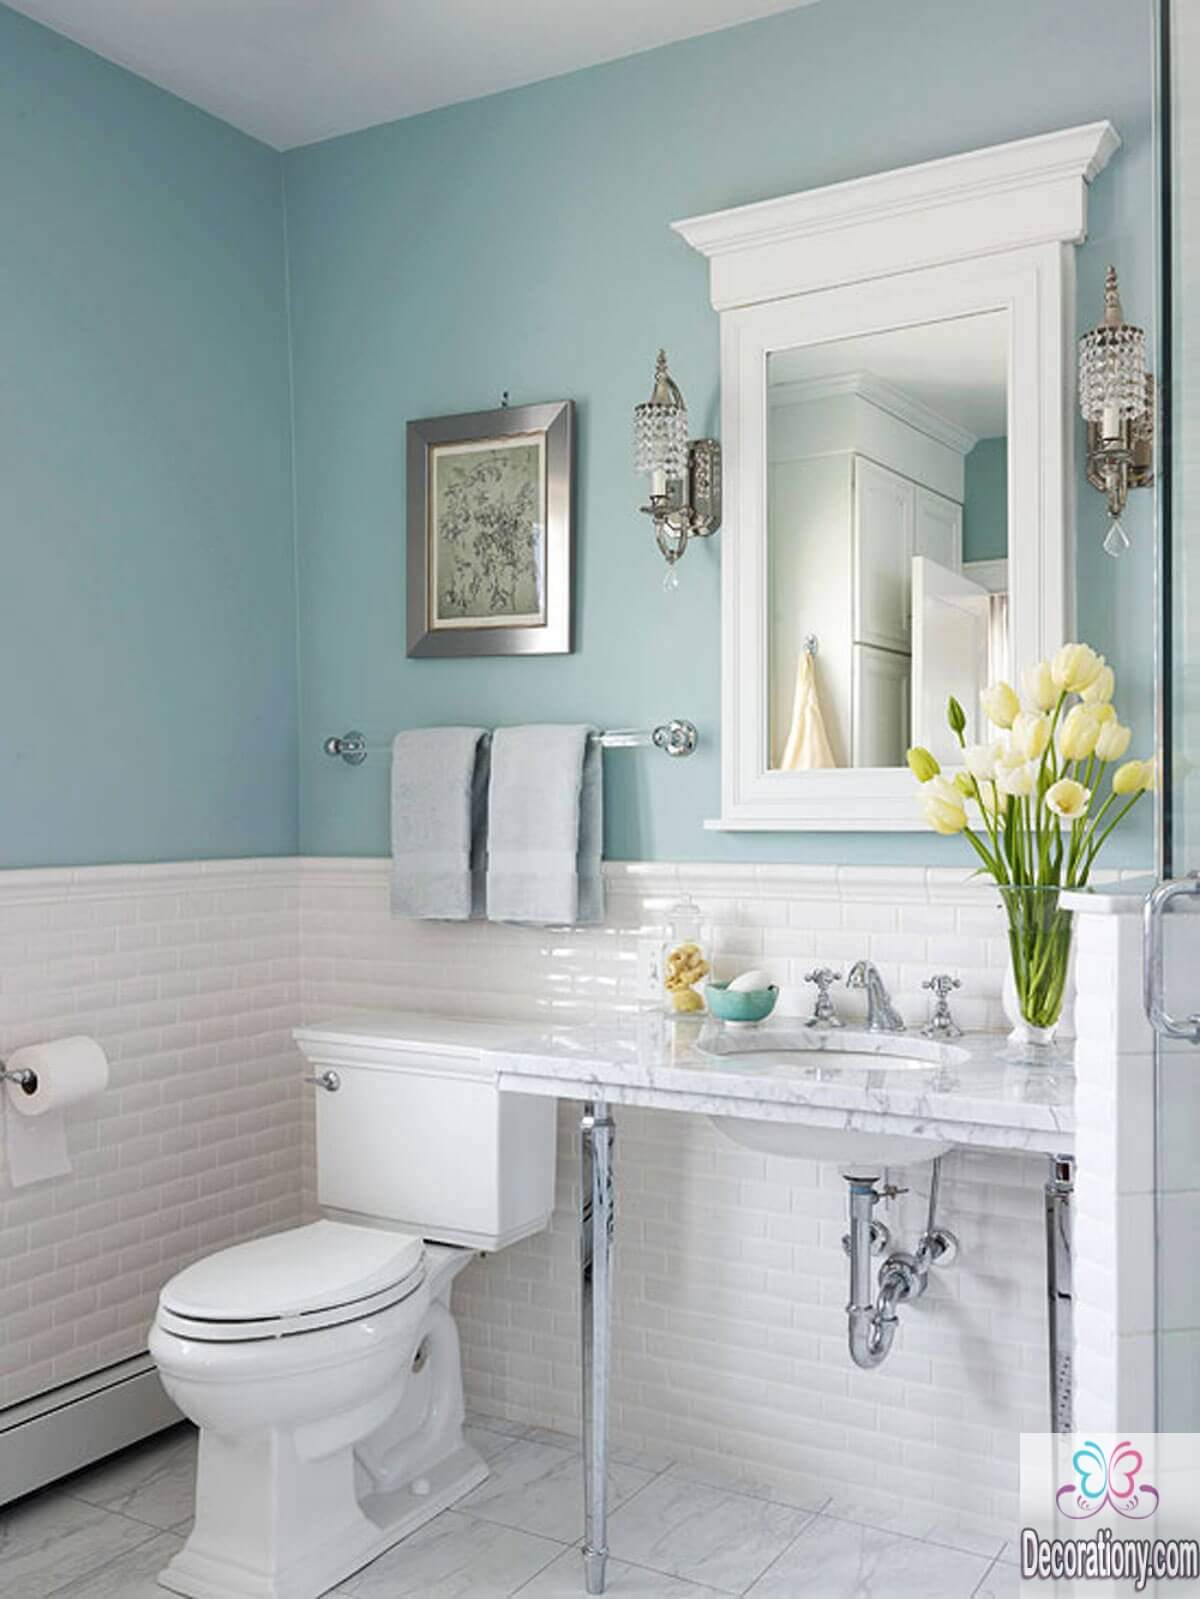 10 affordable colors for small bathrooms decorationy for Small bath ideas